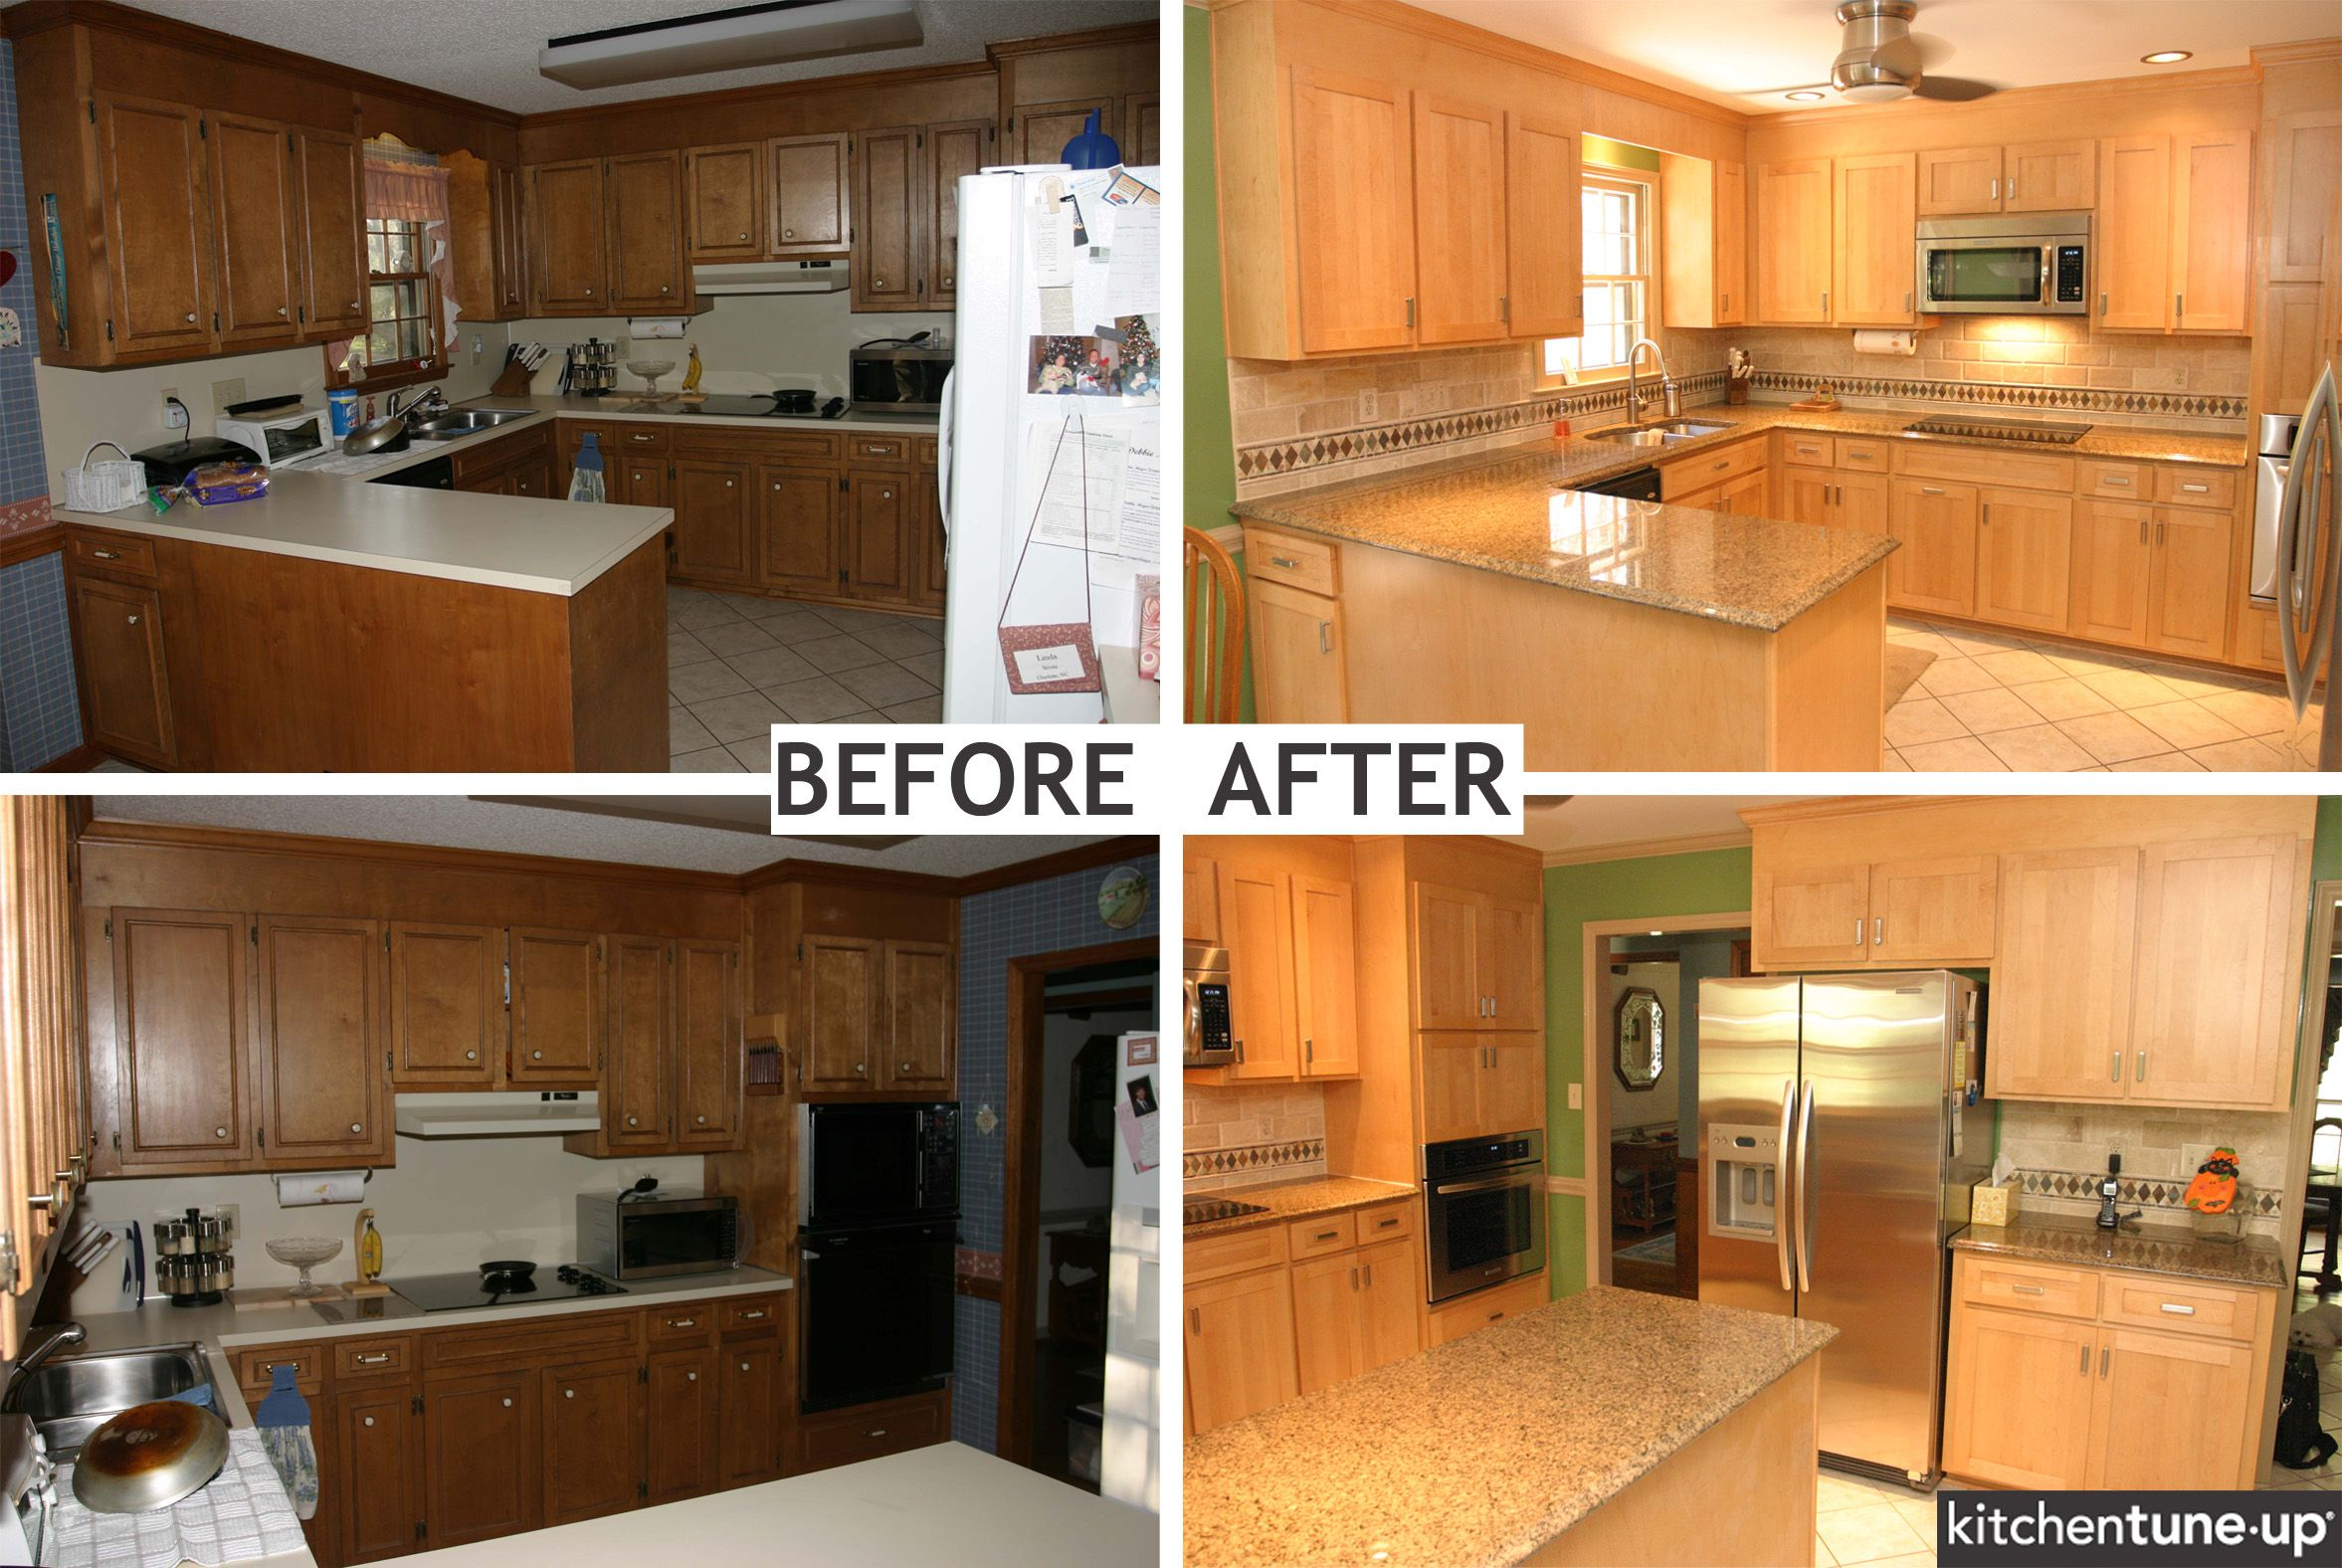 Refacing kitchen cabinet pictures before after kitchen for Kitchen cupboard makeover before and after